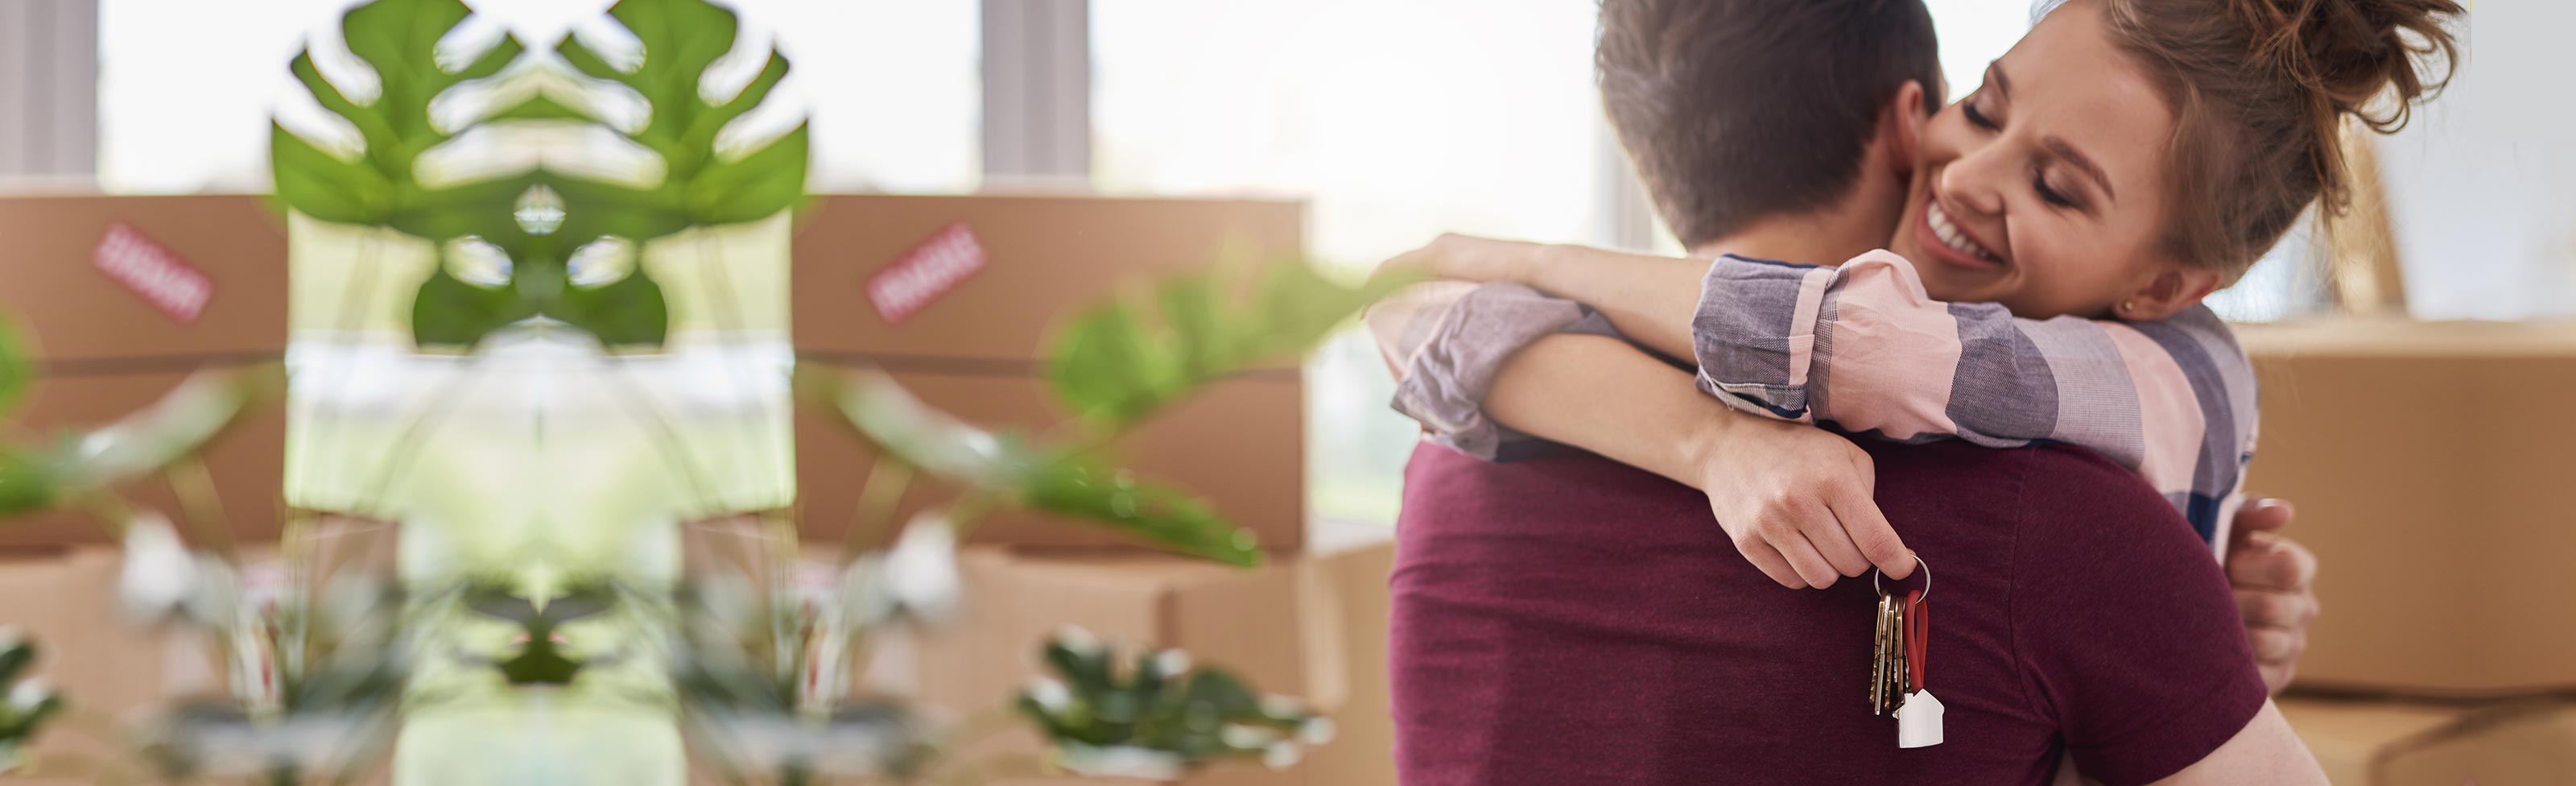 Couple hugging while unpacking